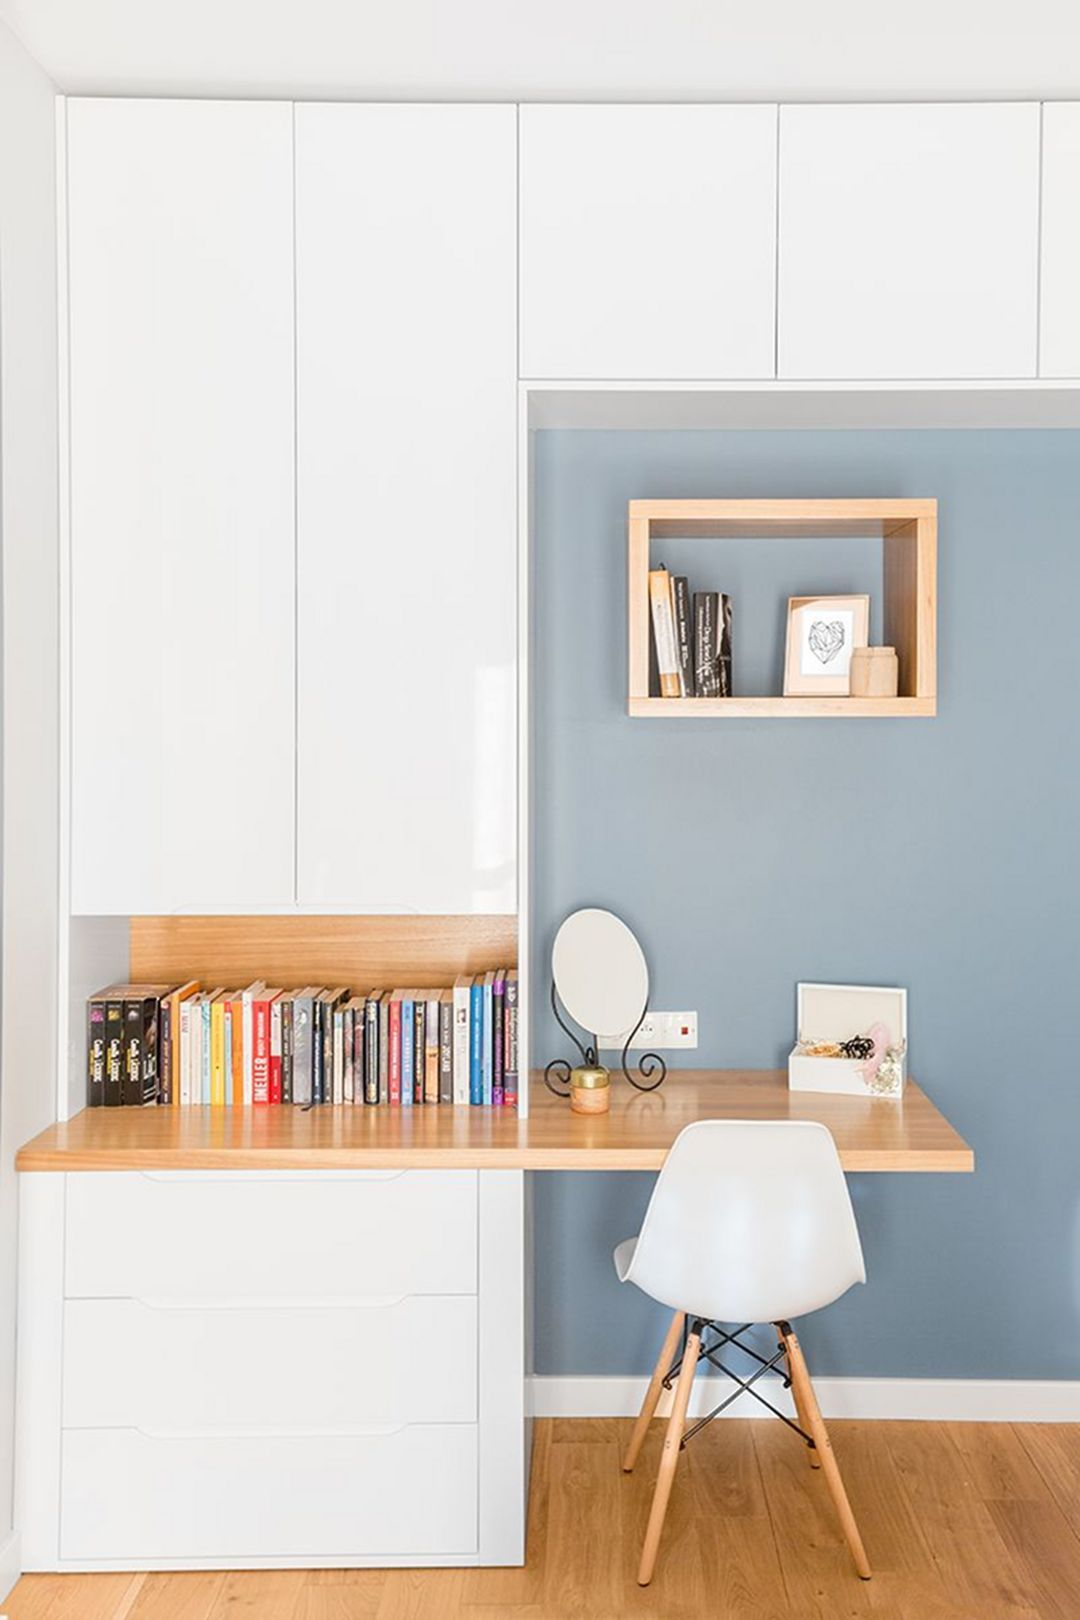 15 Fantastic Small Bedroom Desk Designs For Small Bedroom Ideas images